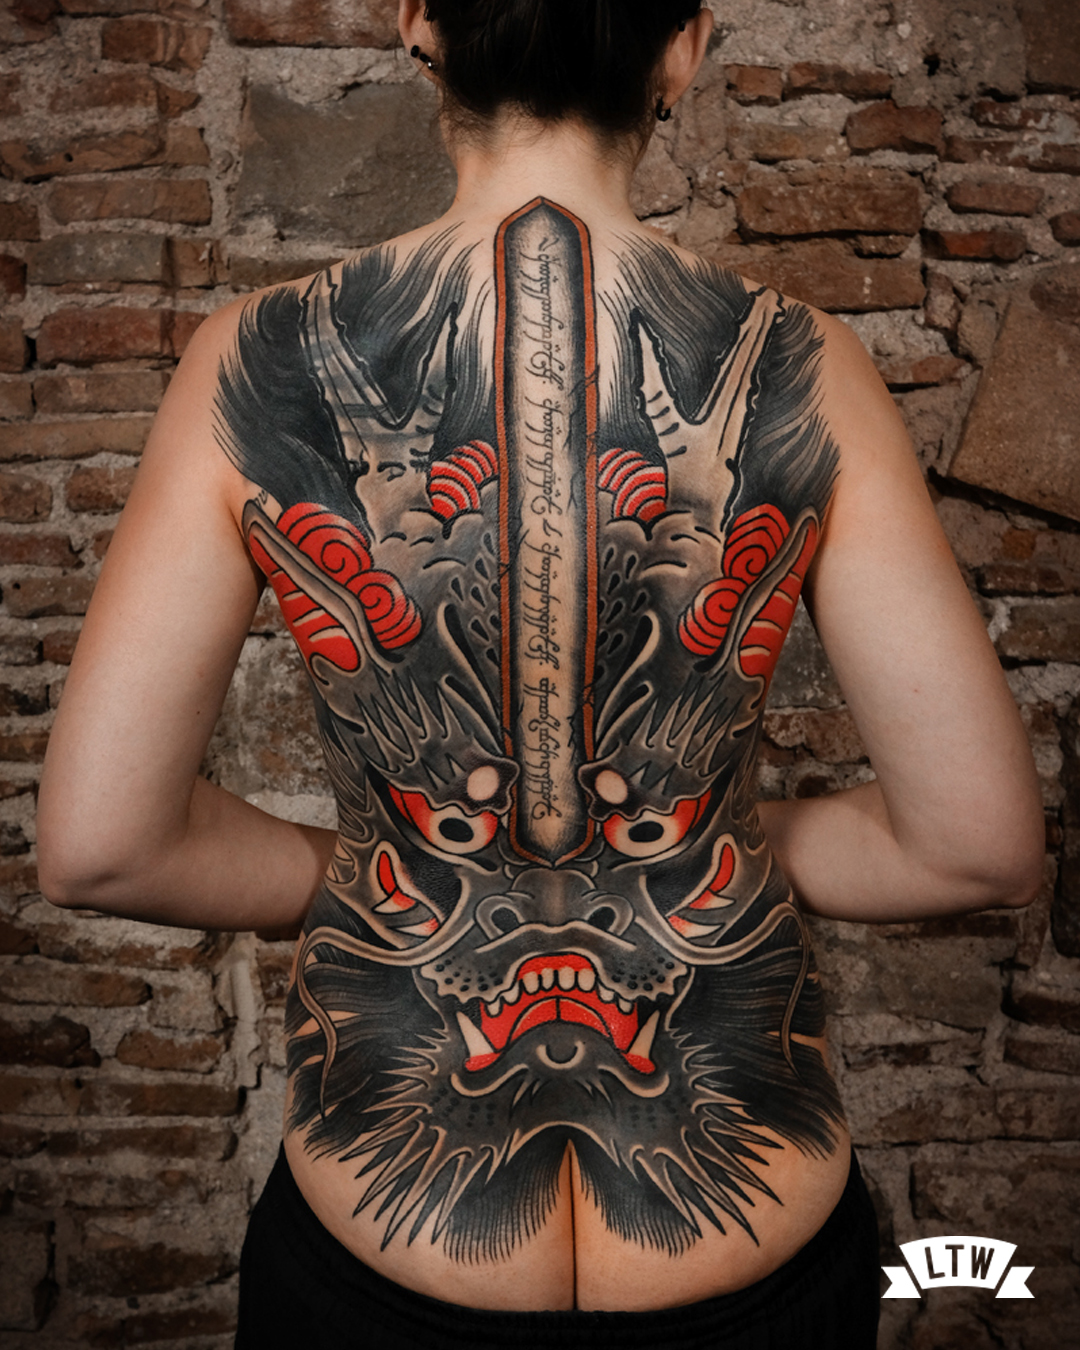 Back piece Cover up done by Nutz in a Japanese style